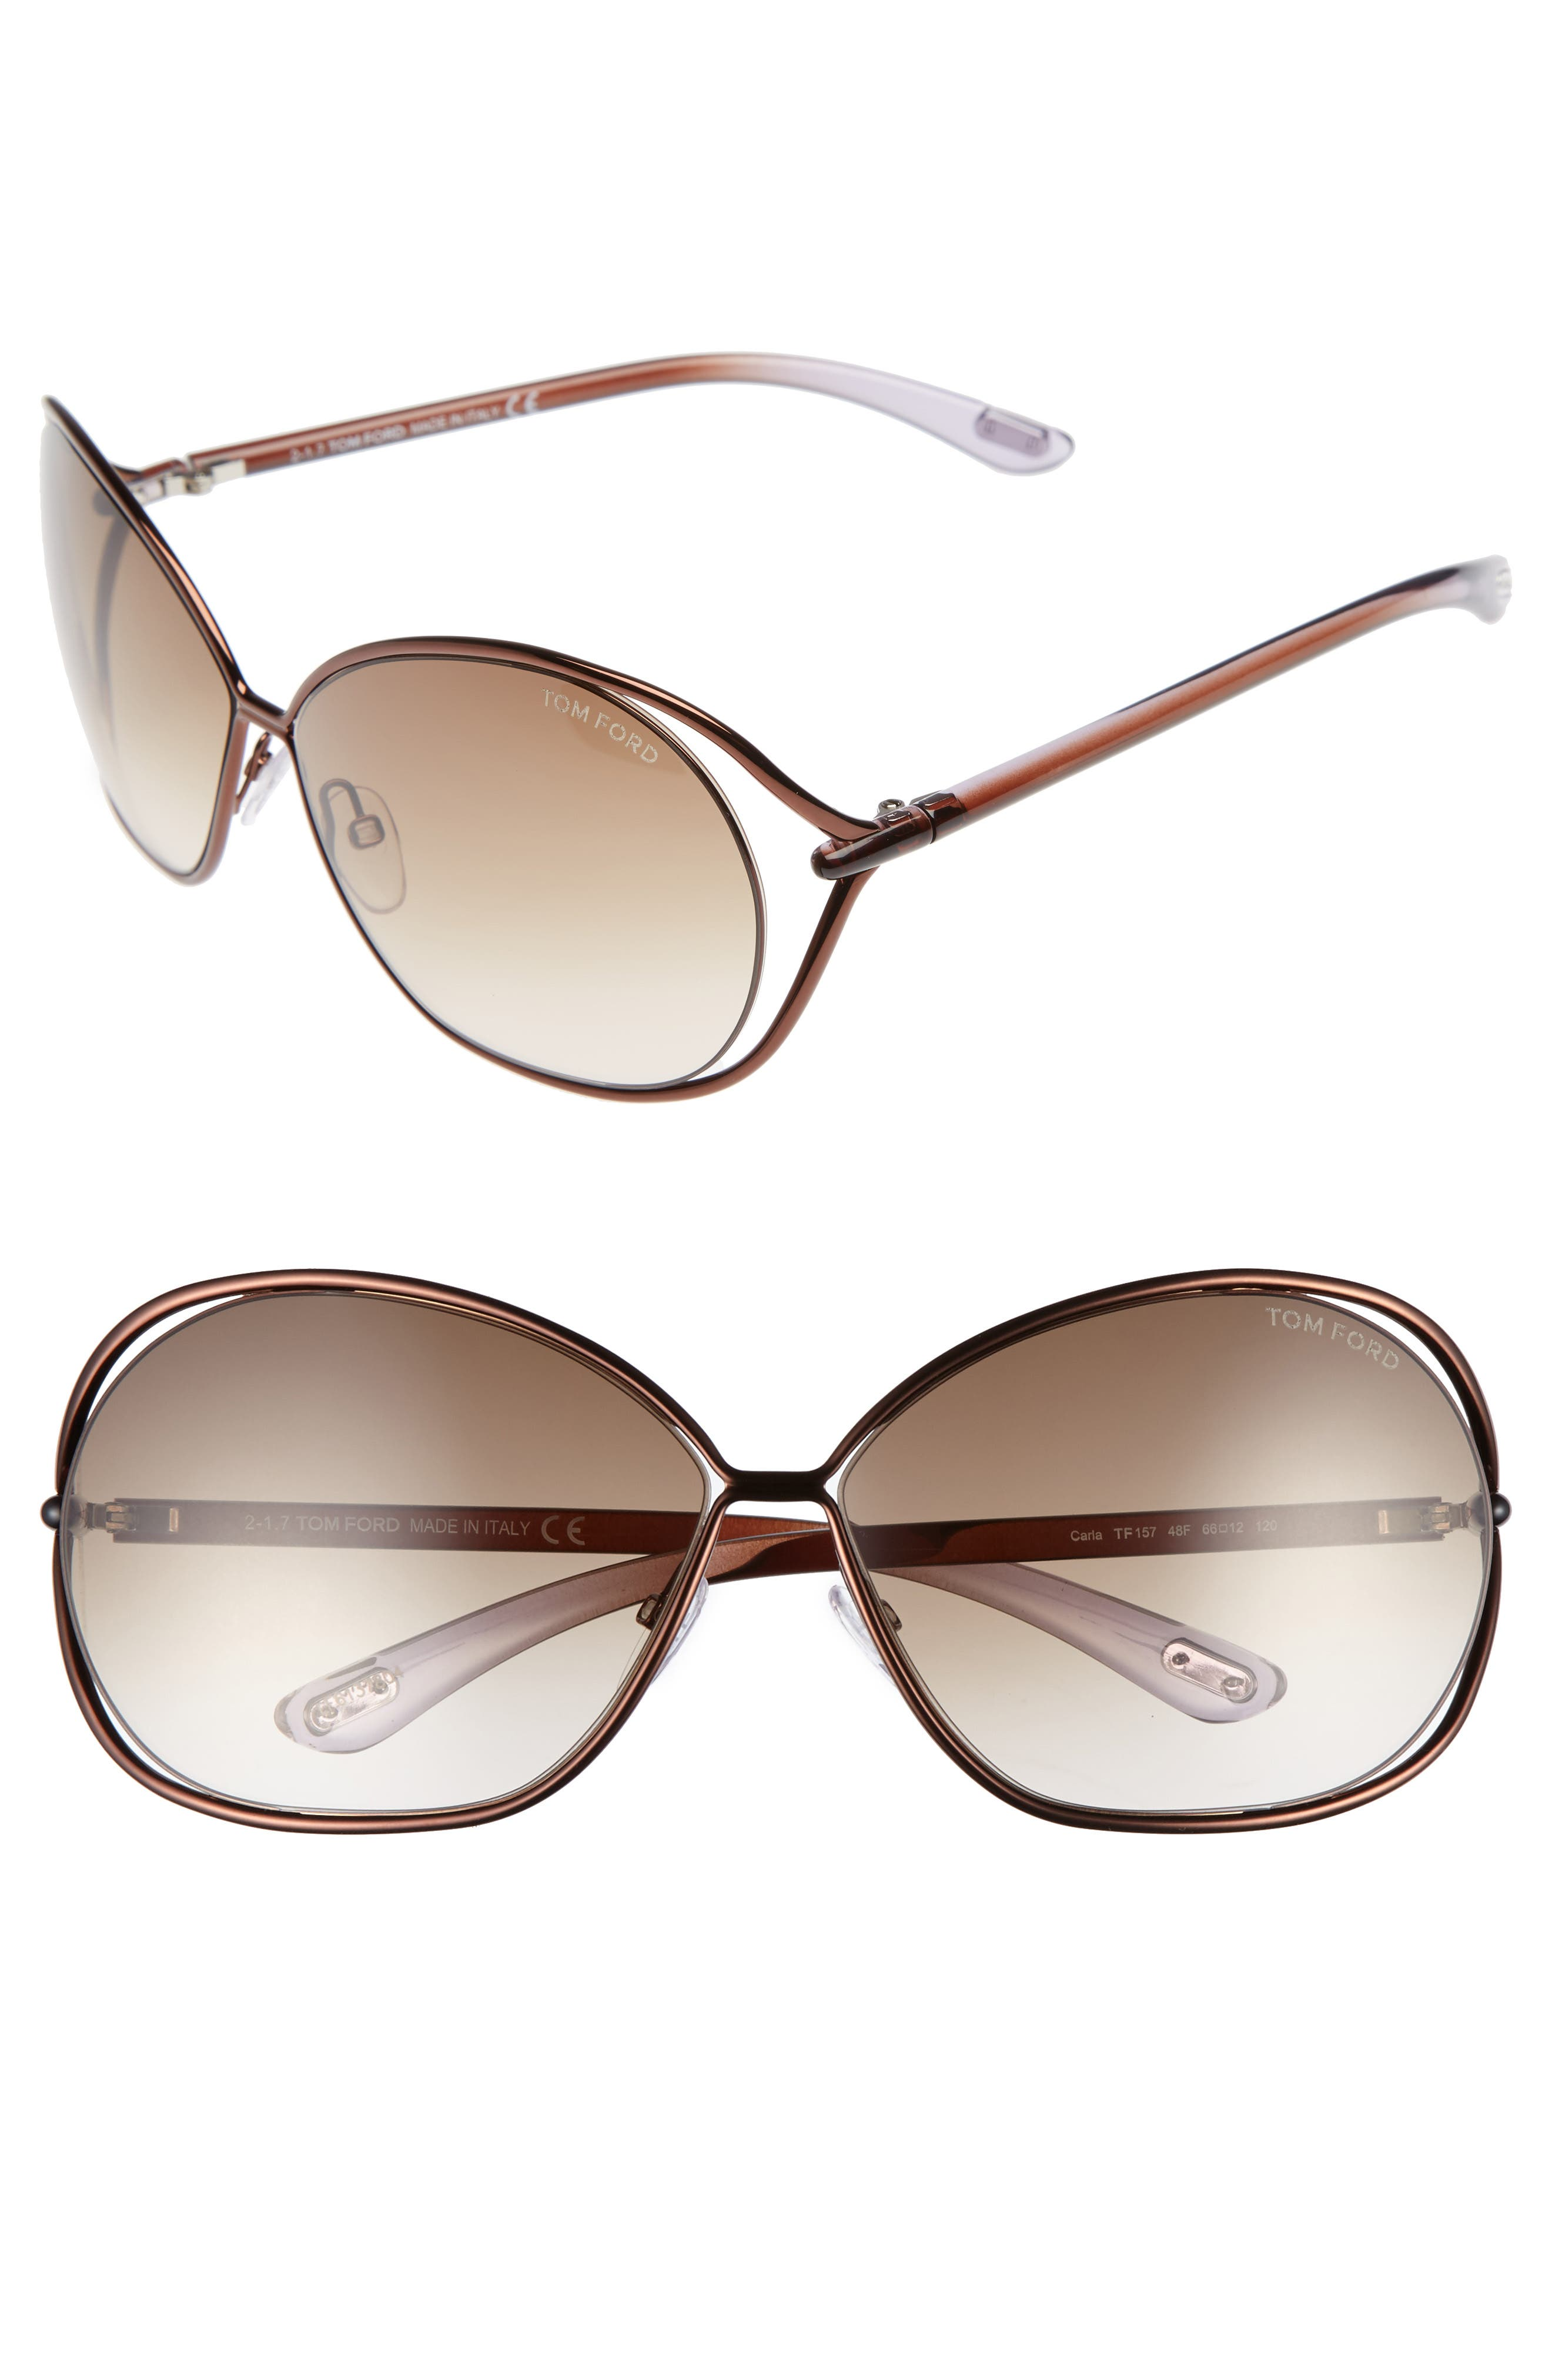 Carla 66mm Oversized Round Metal Sunglasses,                         Main,                         color, Brown/ Brown